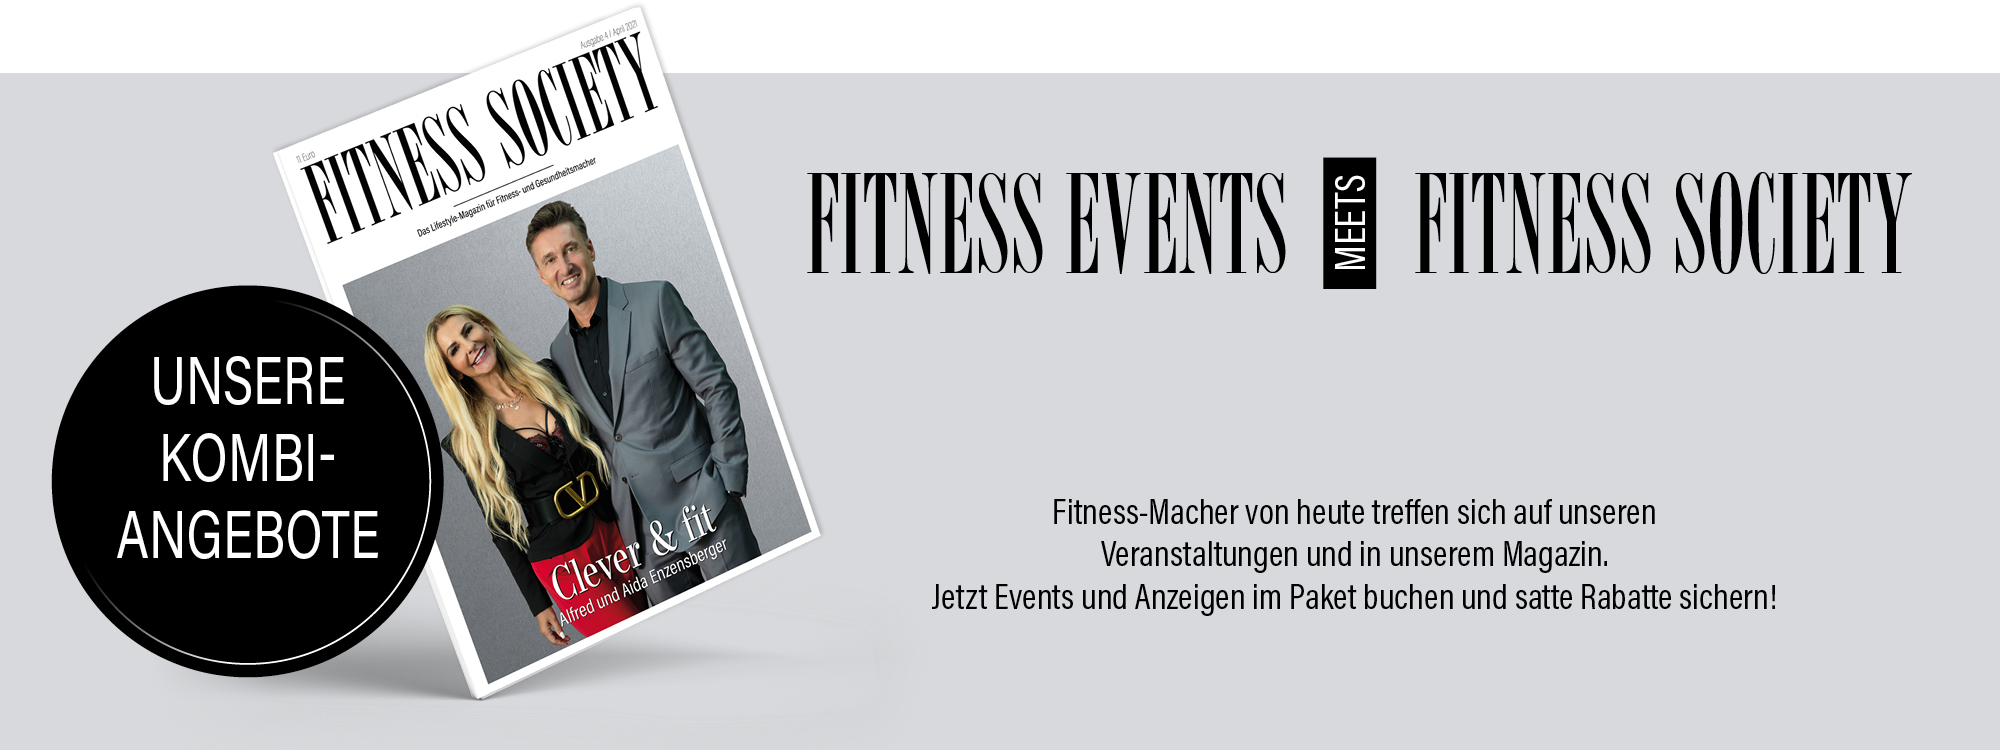 Fitness events meets fitness society